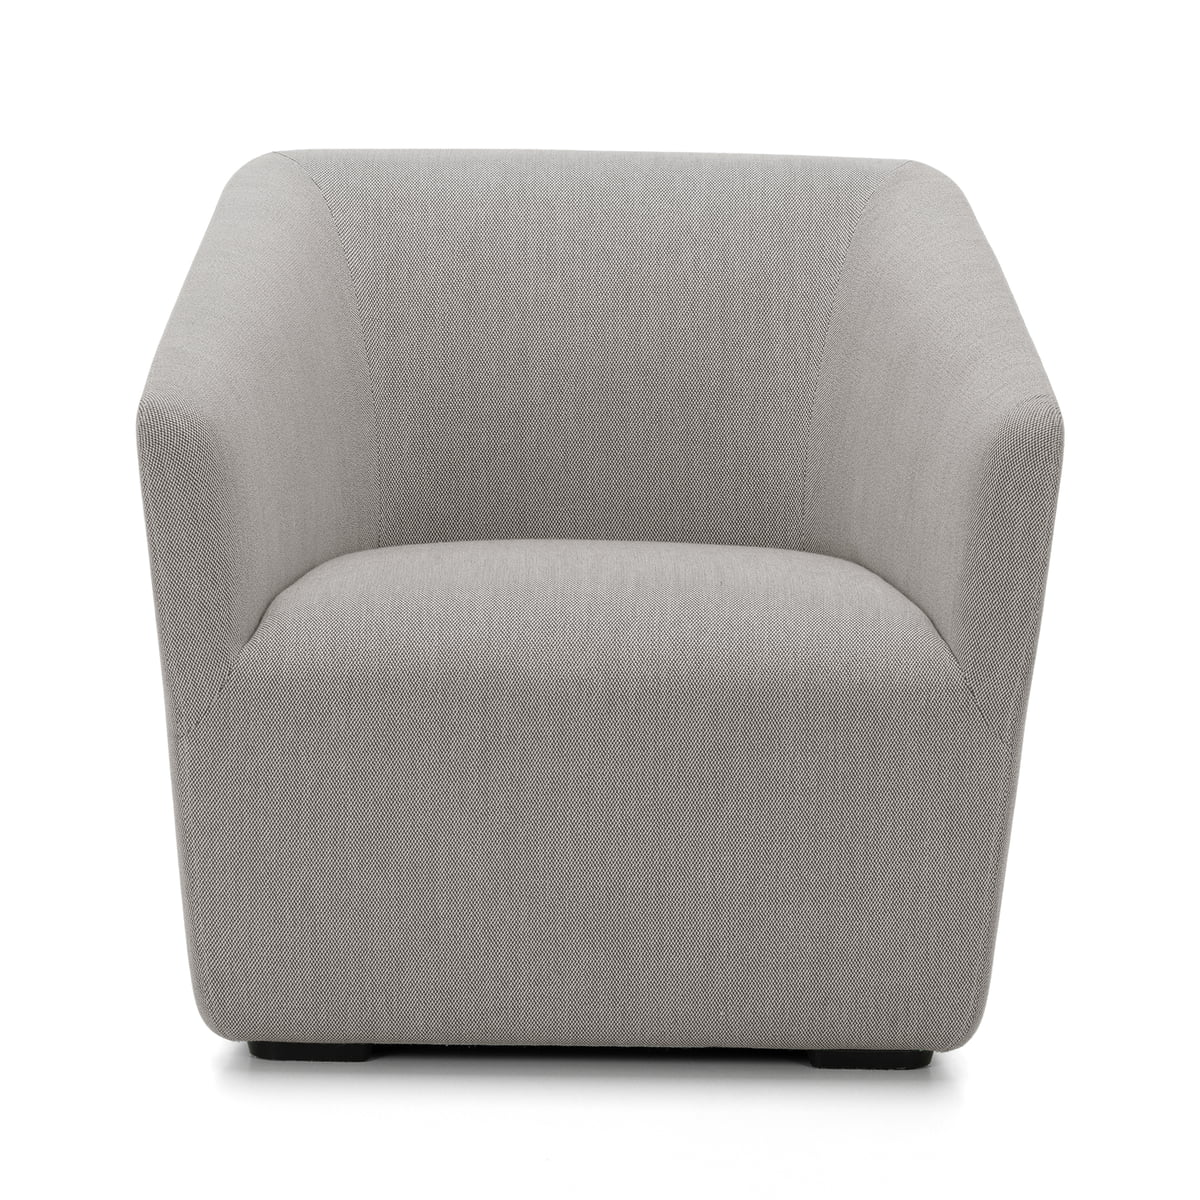 Occasional Lounge Chair From Vitra In Dark Grey (Stonegrey 13)